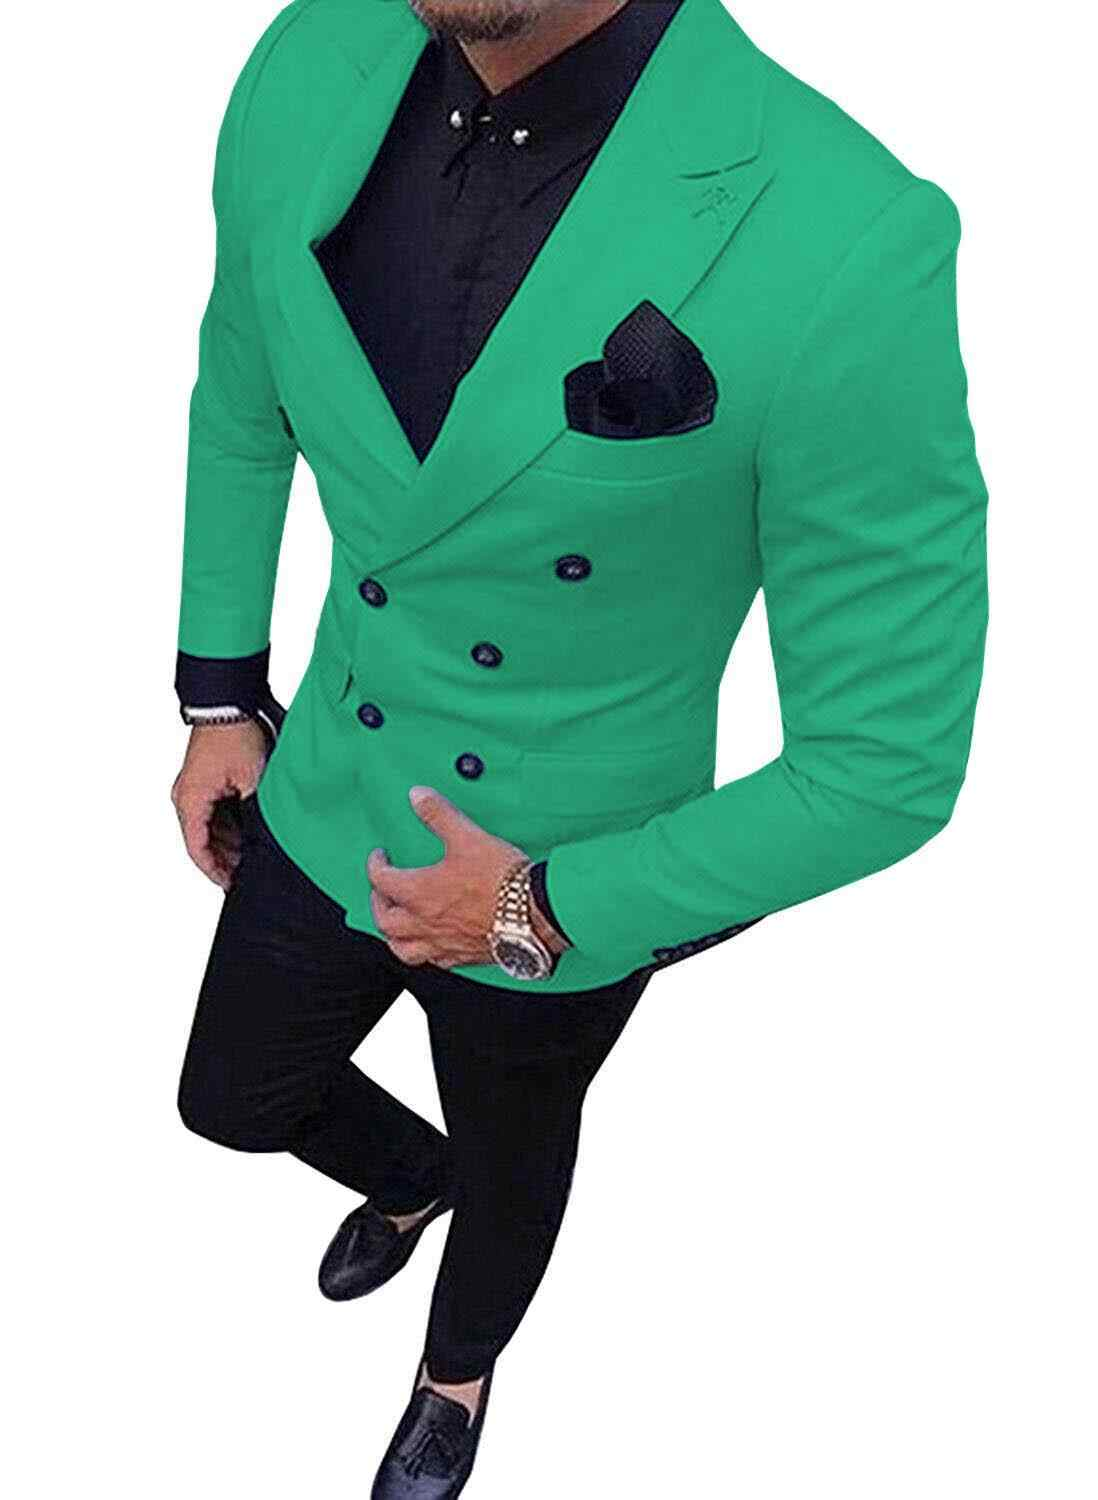 2020 New Green Men's Suit Double-Breasted 2-Piece Suit Notch Lapel Blazer Jacket Tux & Trousers For Weeding , Party